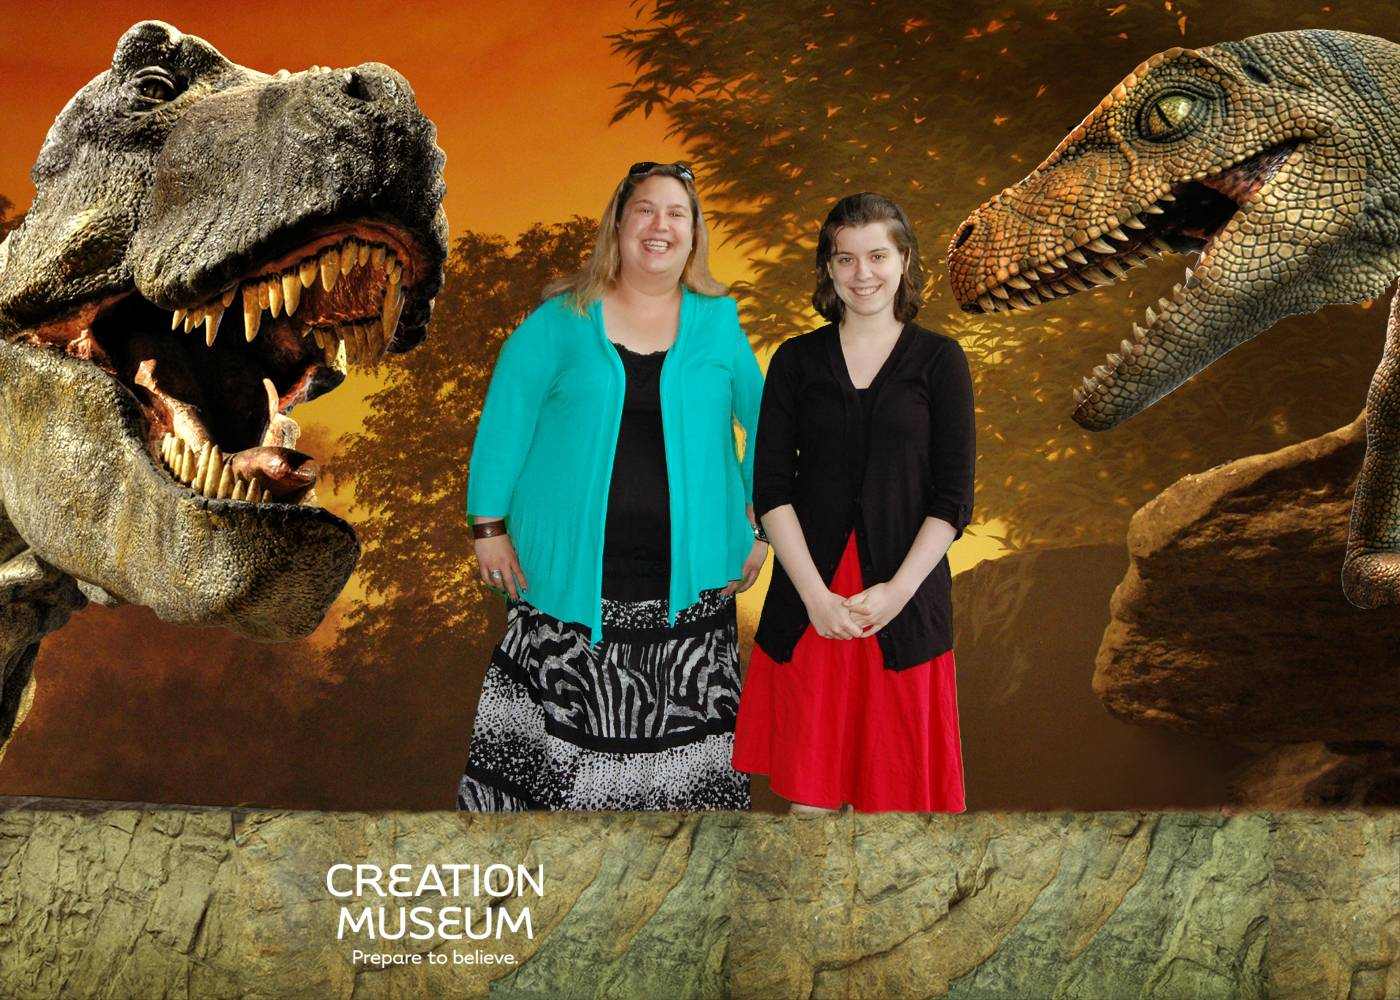 Louise (left) and Kate in front of a green screen... I hope